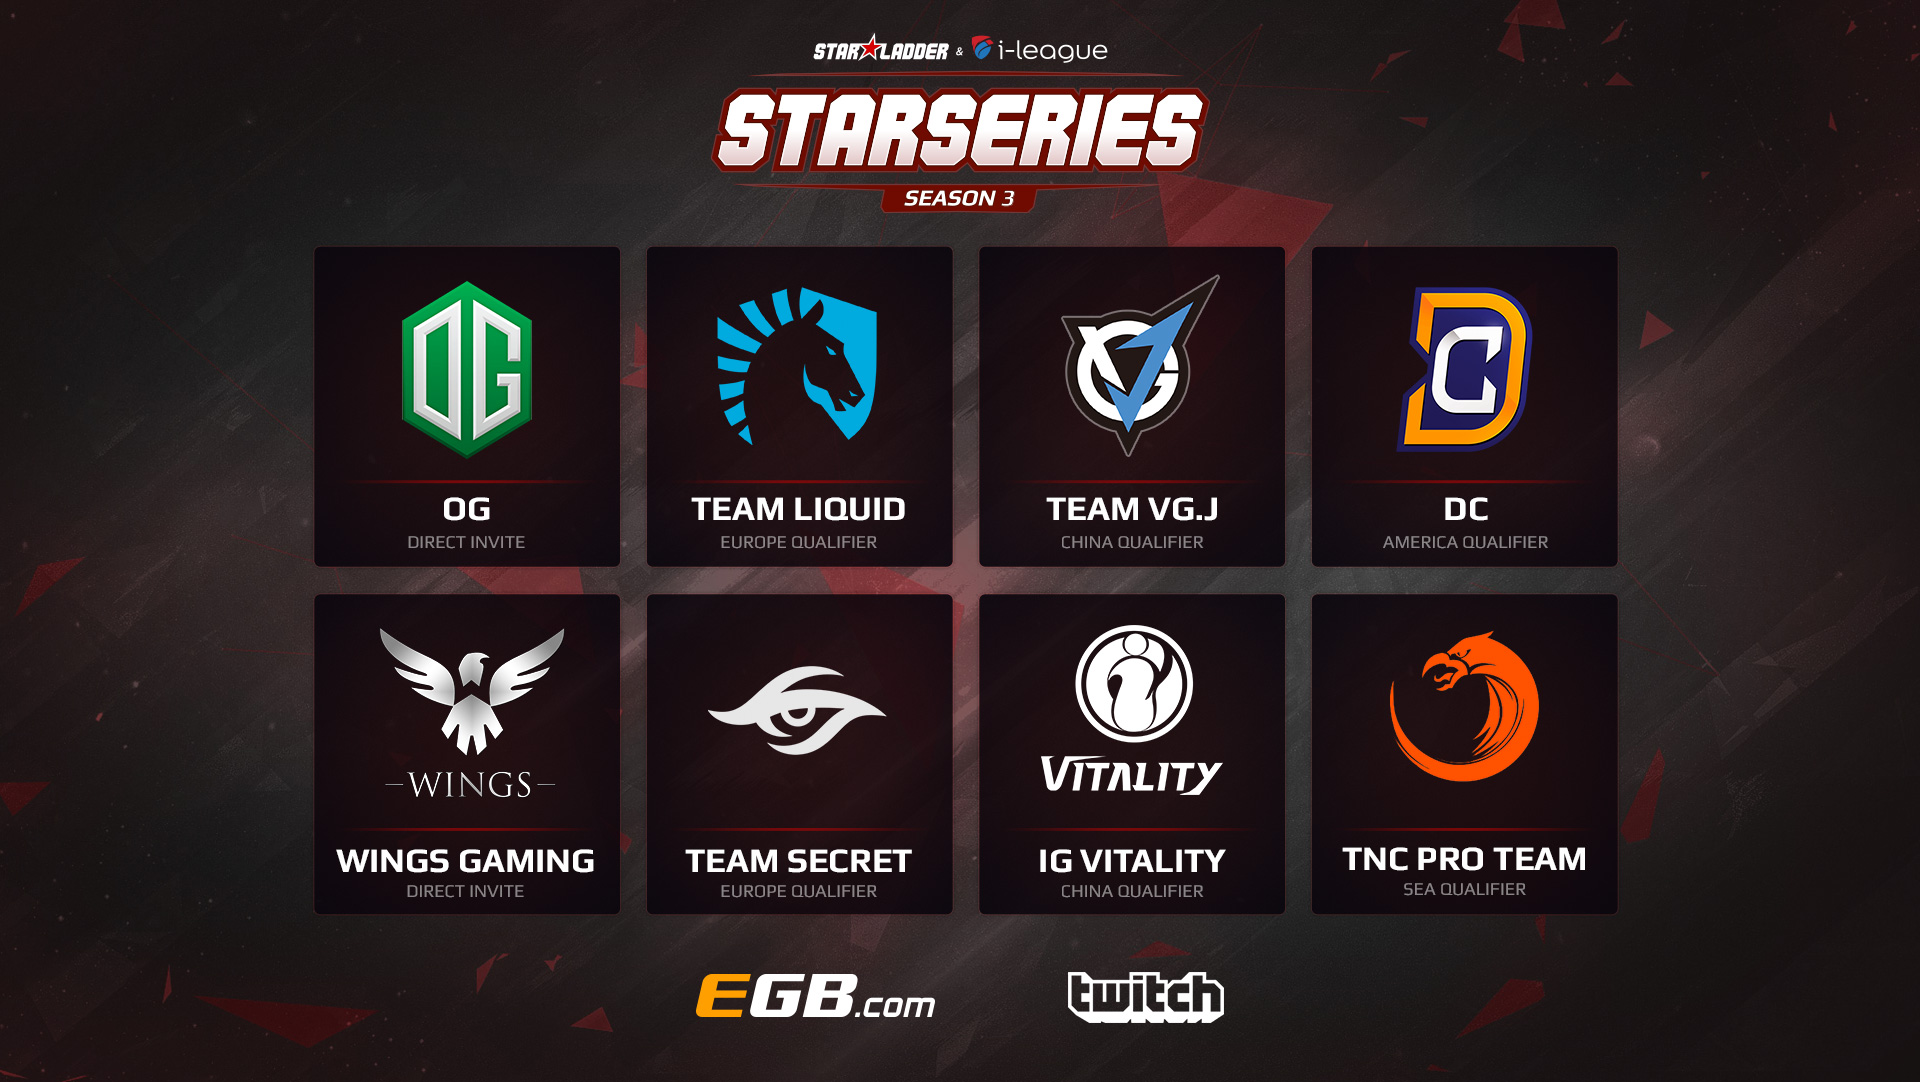 SL i-League StarSeries S3 Participants